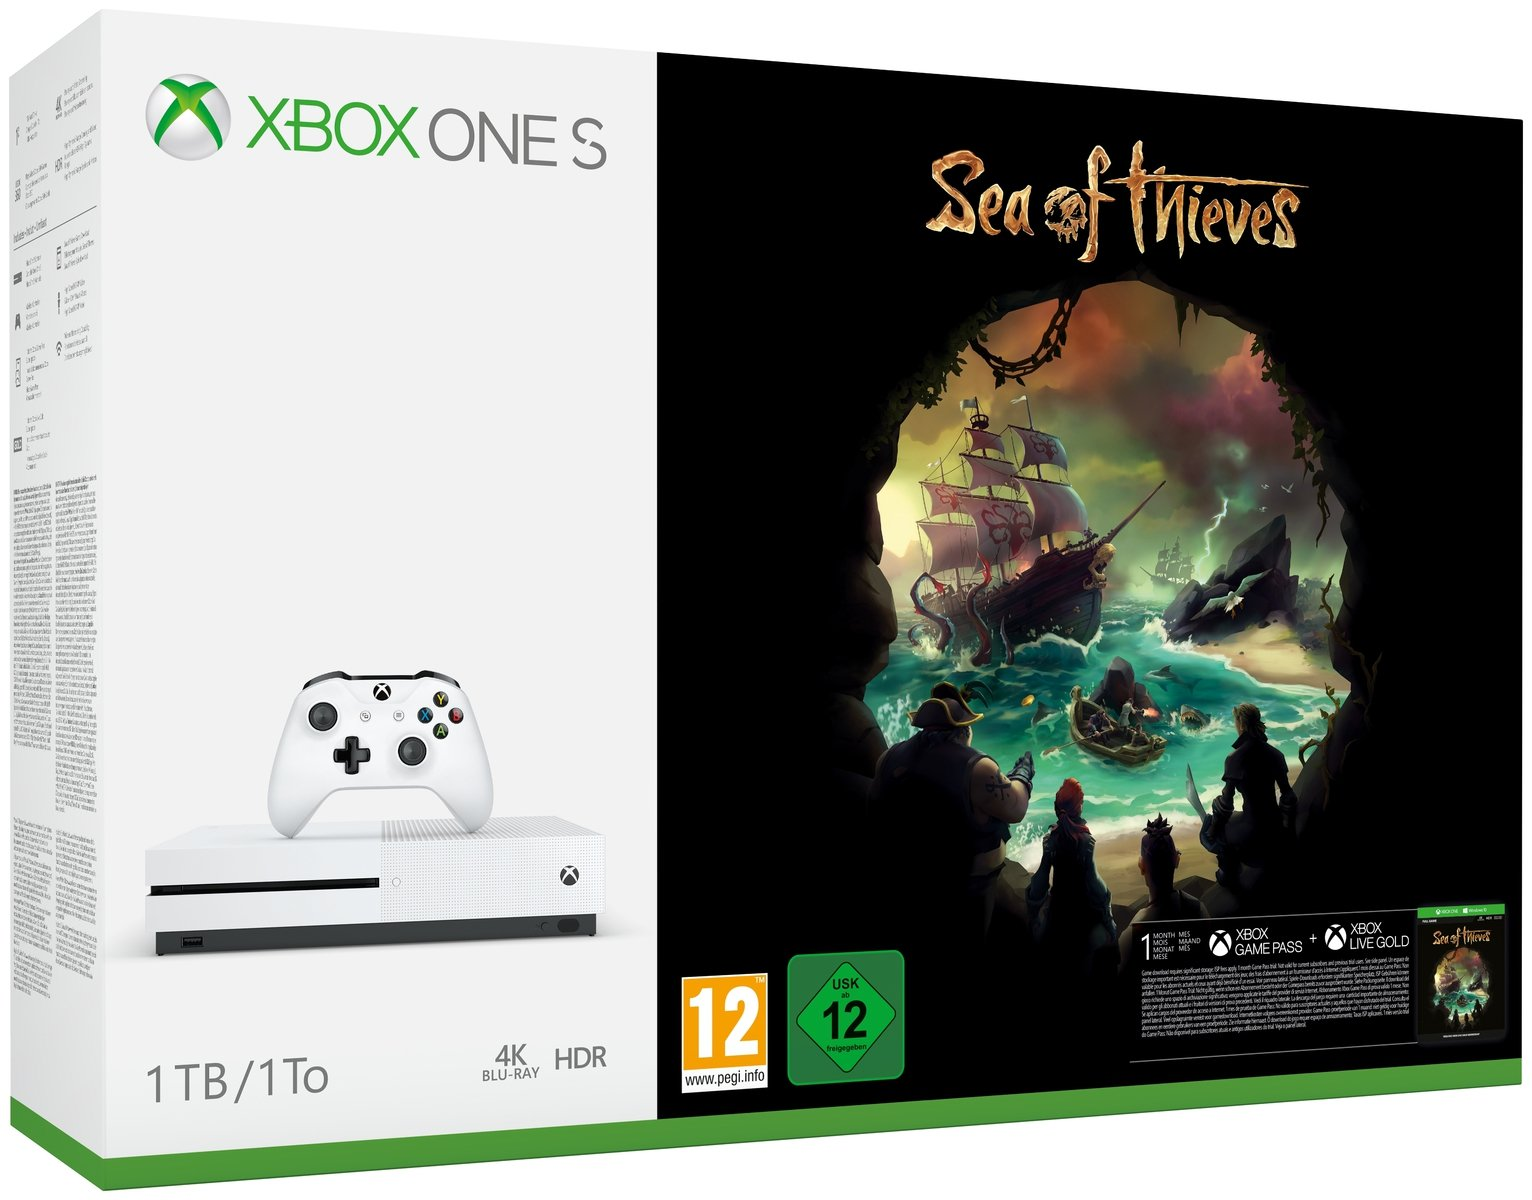 Xbox One S 1TB with Sea of Thieves Console Bundle